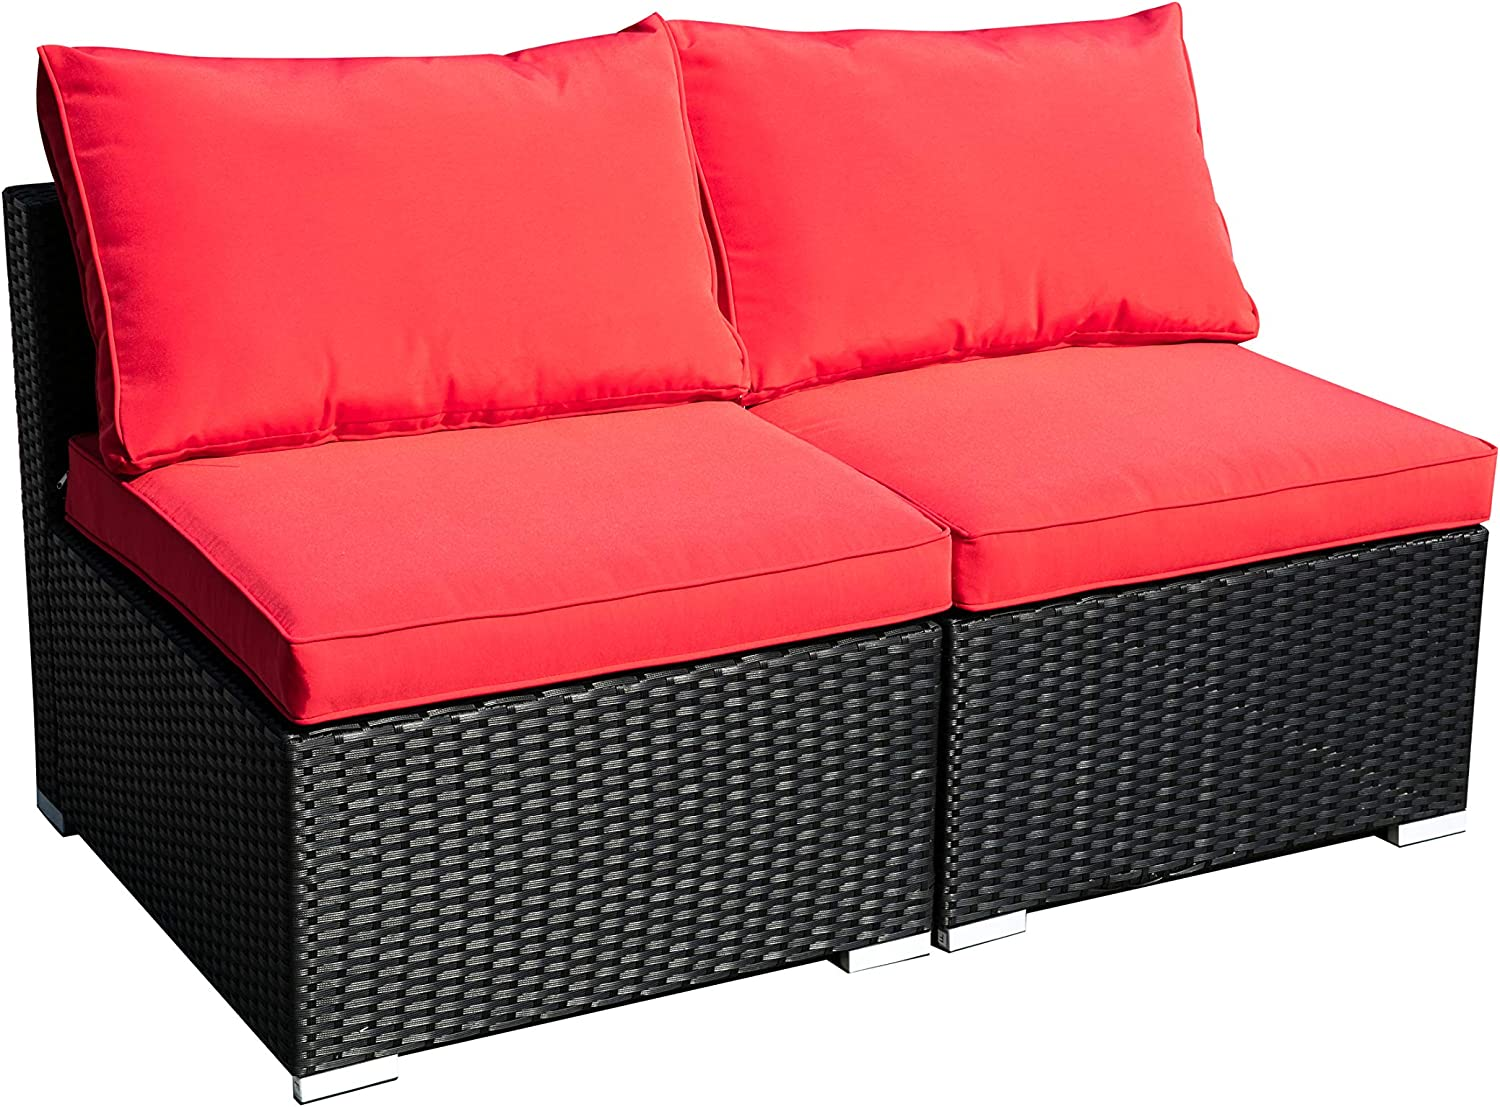 Outdoor Patio Furniture 2-Pieces PE Rattan Wicker Sectional Red Cushioned Sofa Sets with 2 Pillows